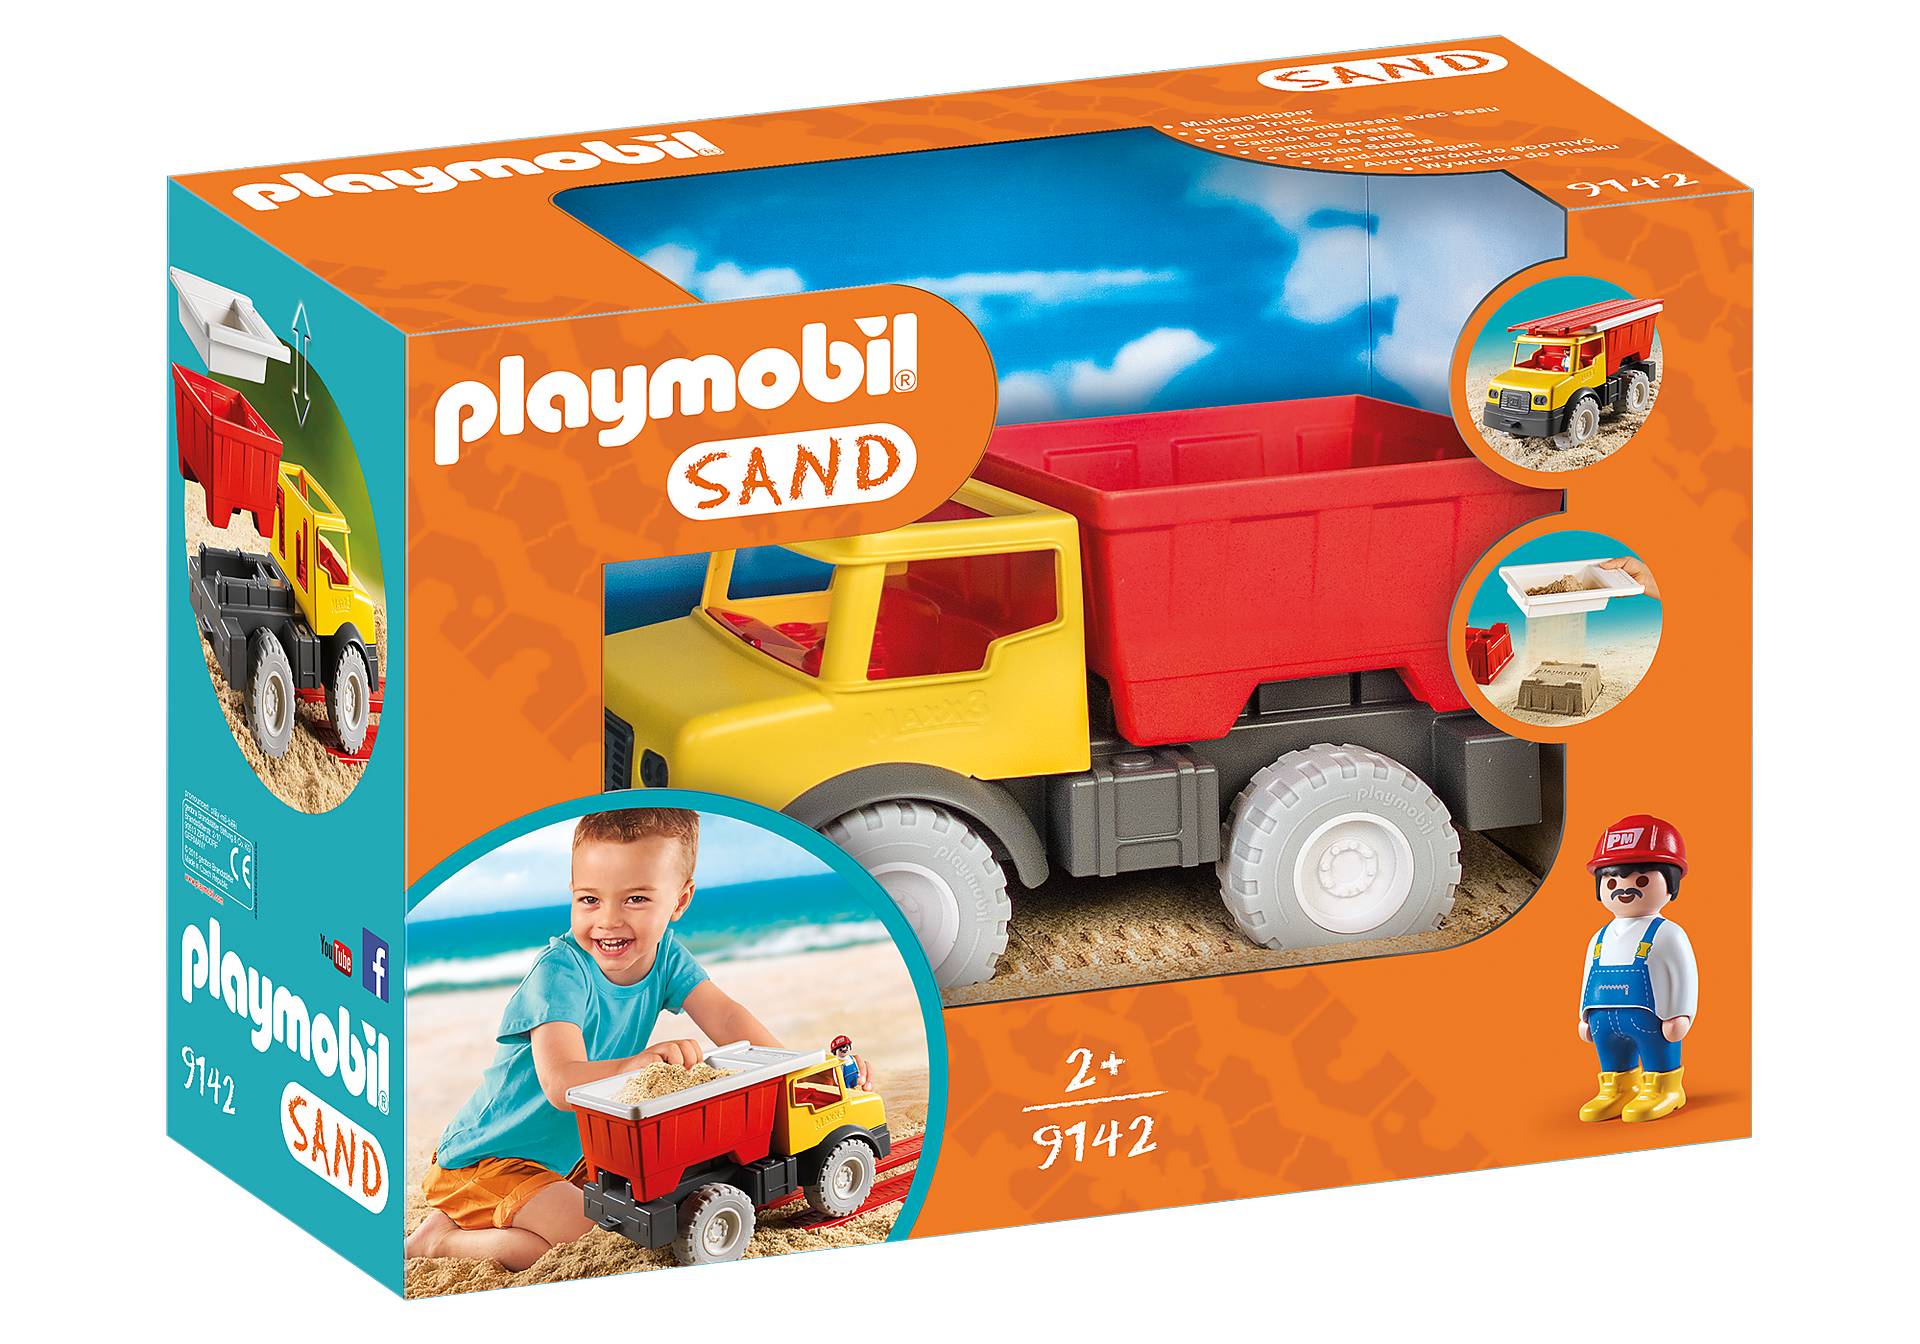 http://media.playmobil.com/i/playmobil/9142_product_box_front/Muldenkipper